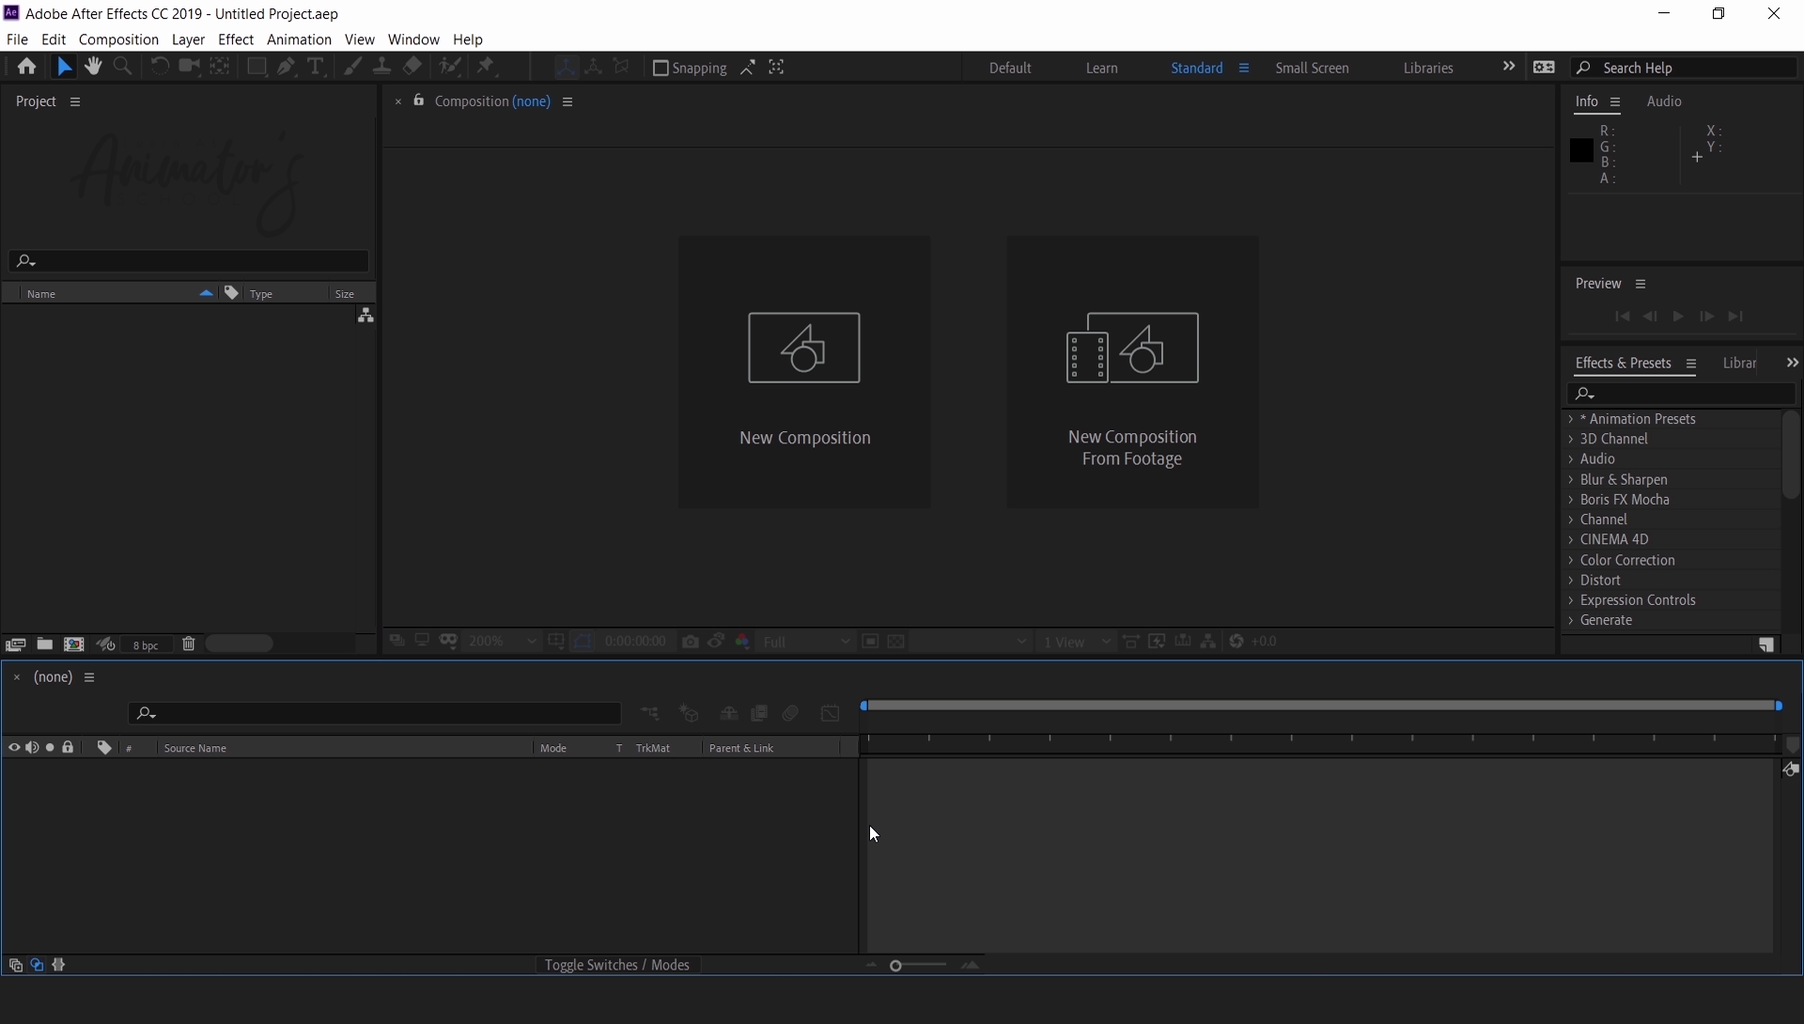 Knowing All the Panels in After Effects